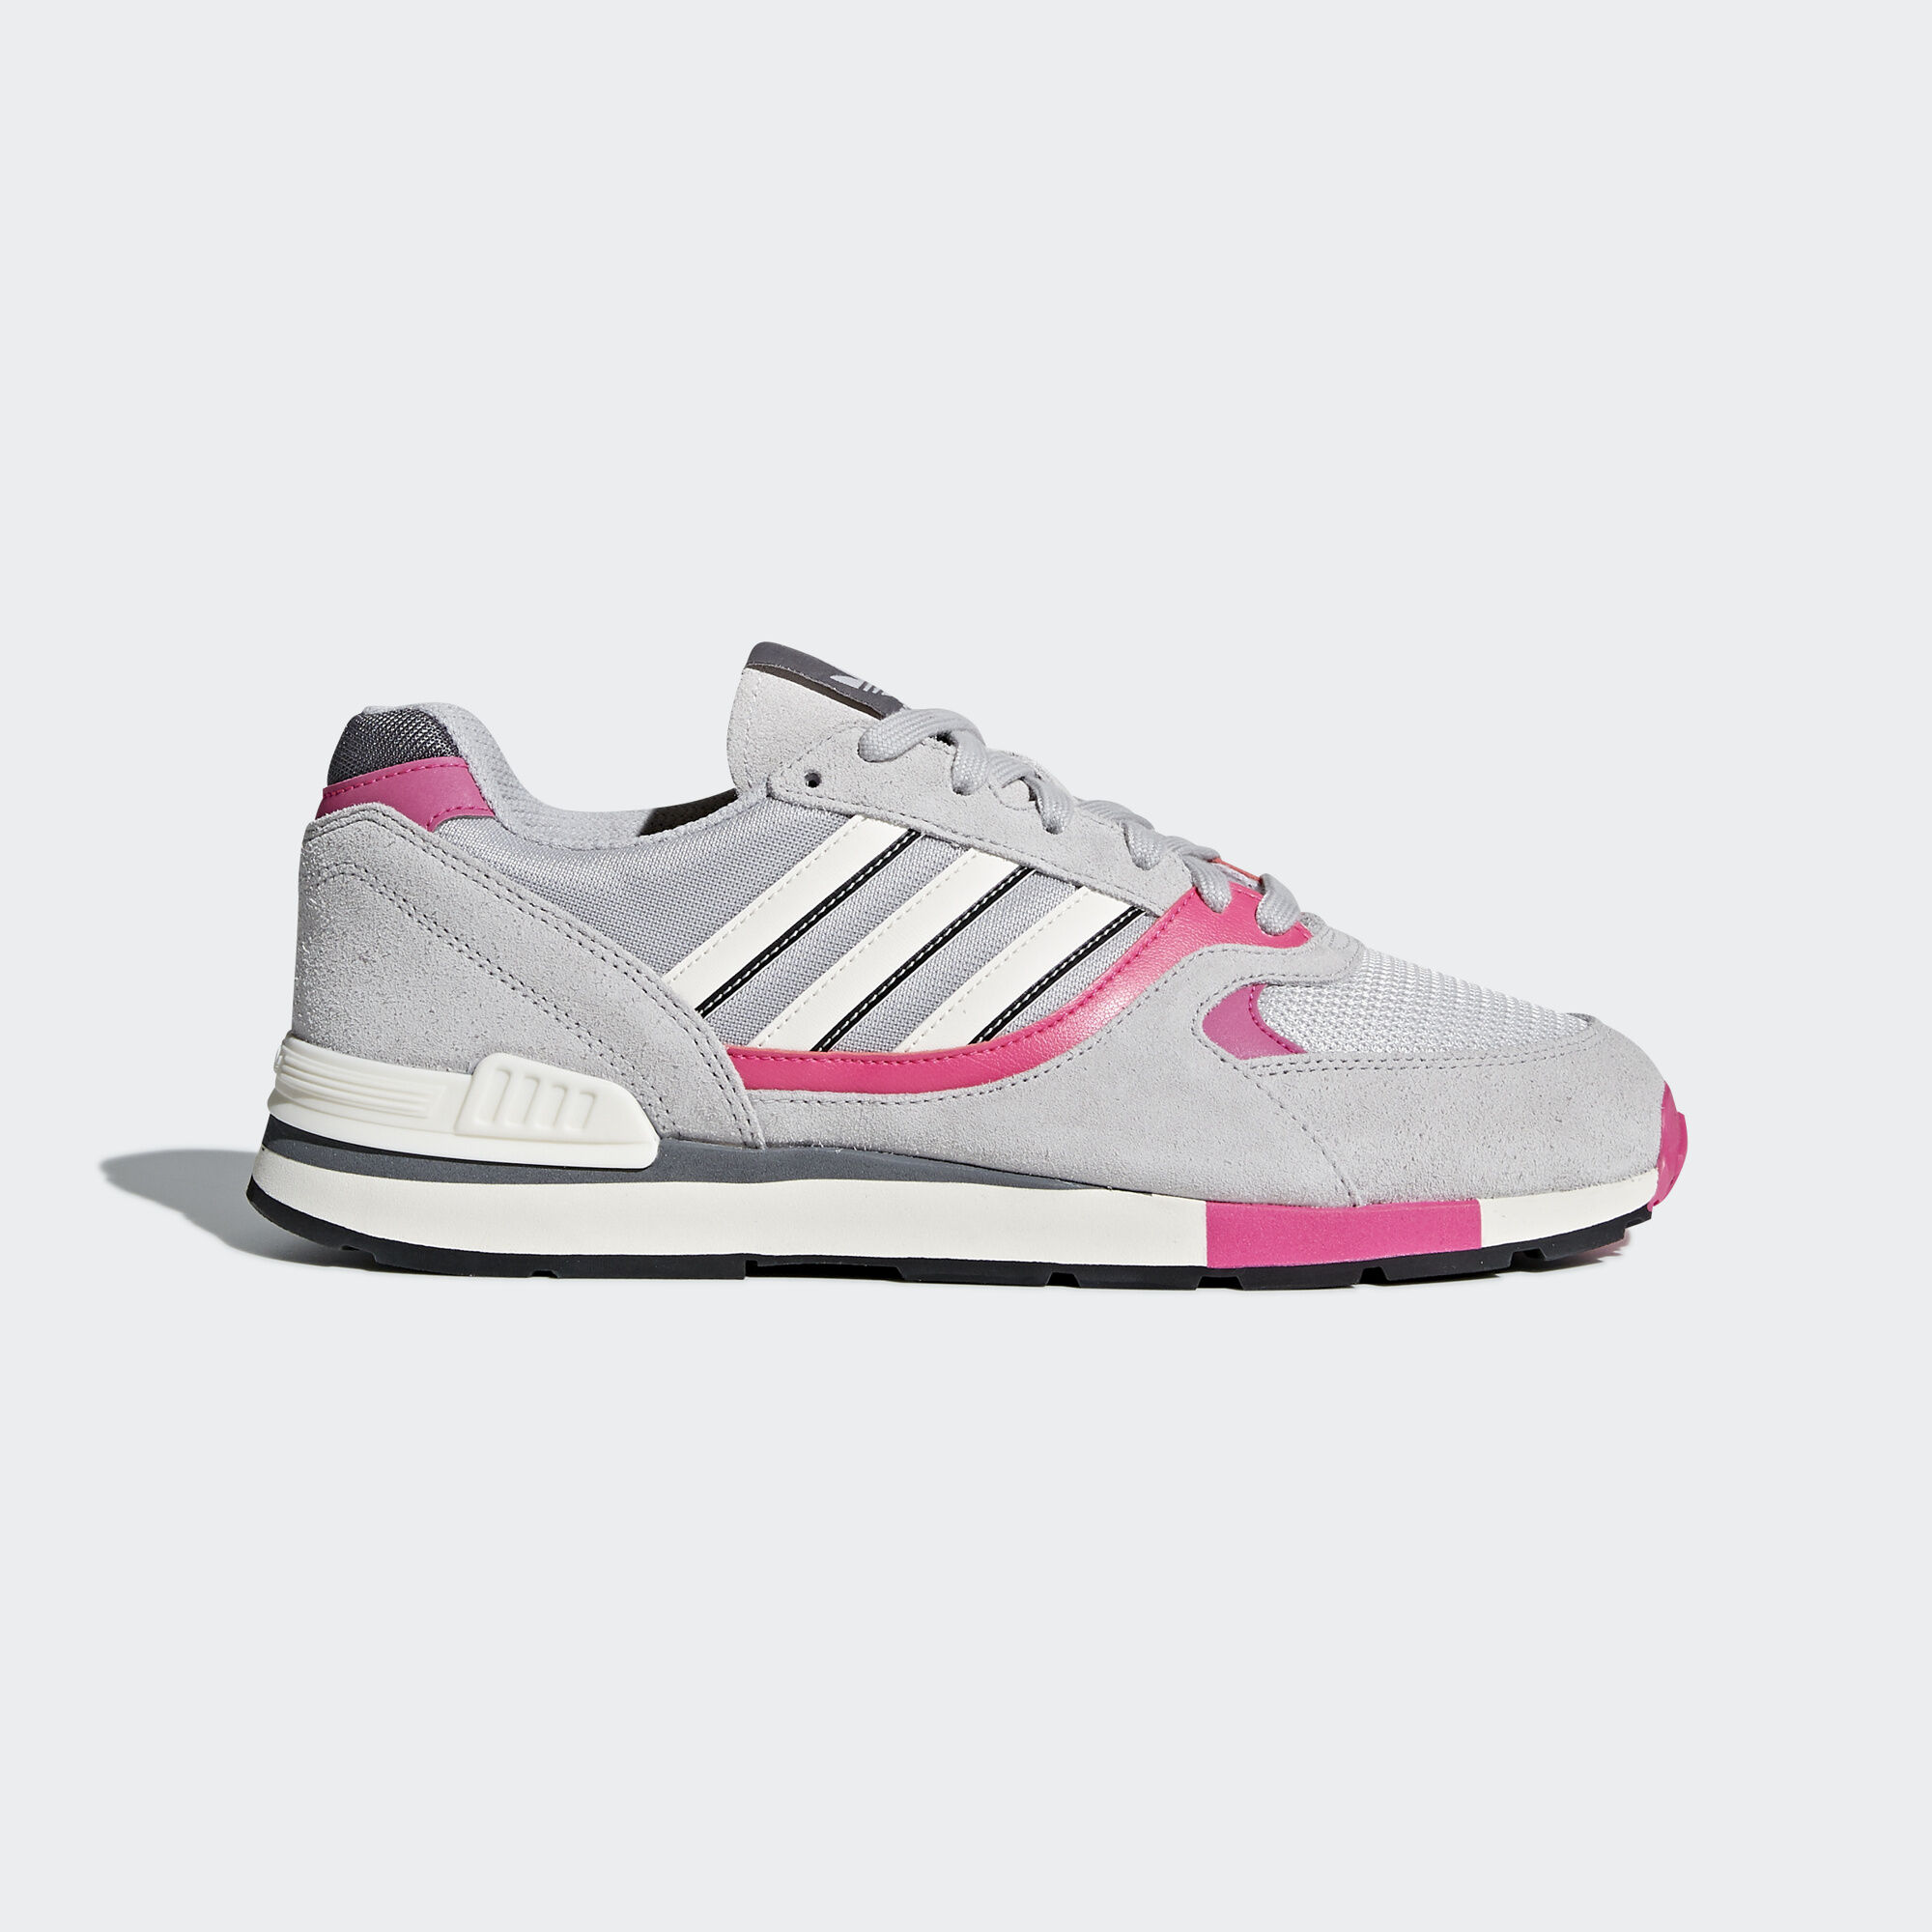 adidas quesence shoes